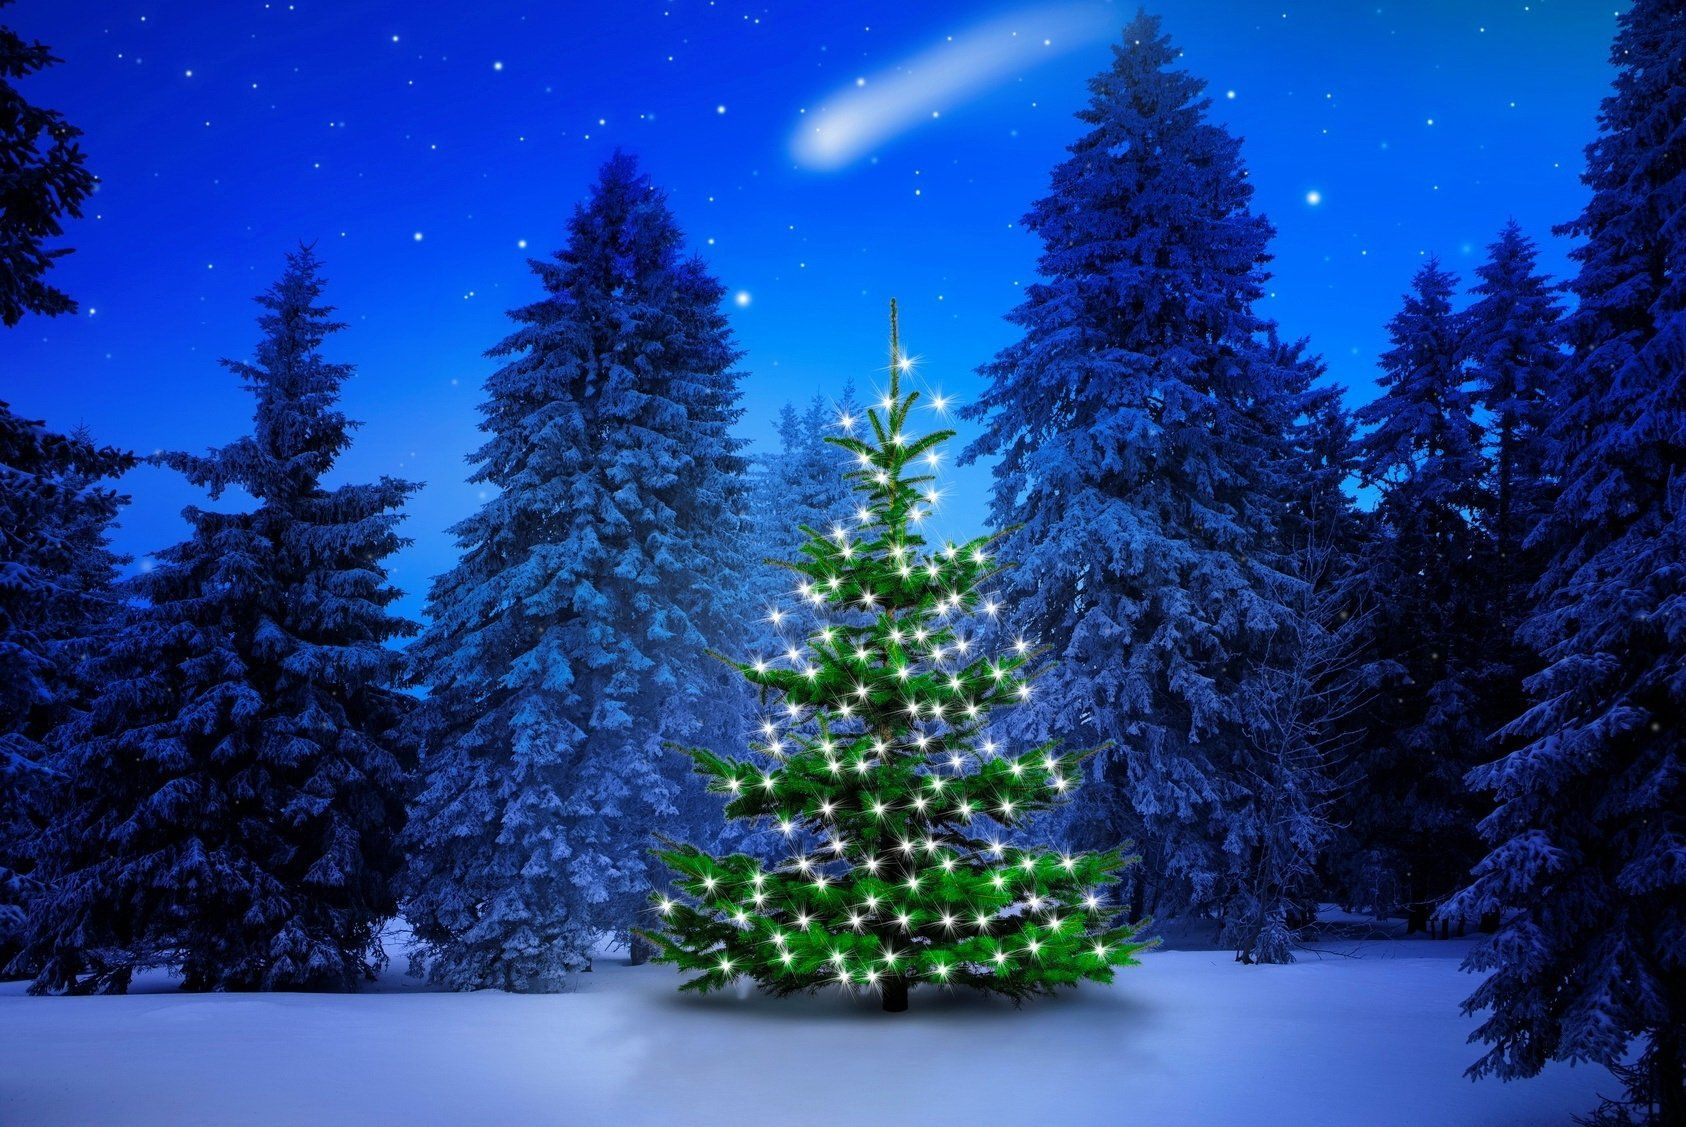 Lighted Tree In Winter Forest Computer Wallpapers Desktop Christmas Tree Wallpaper Winter Wallpaper Desktop Tree Wallpaper Phone